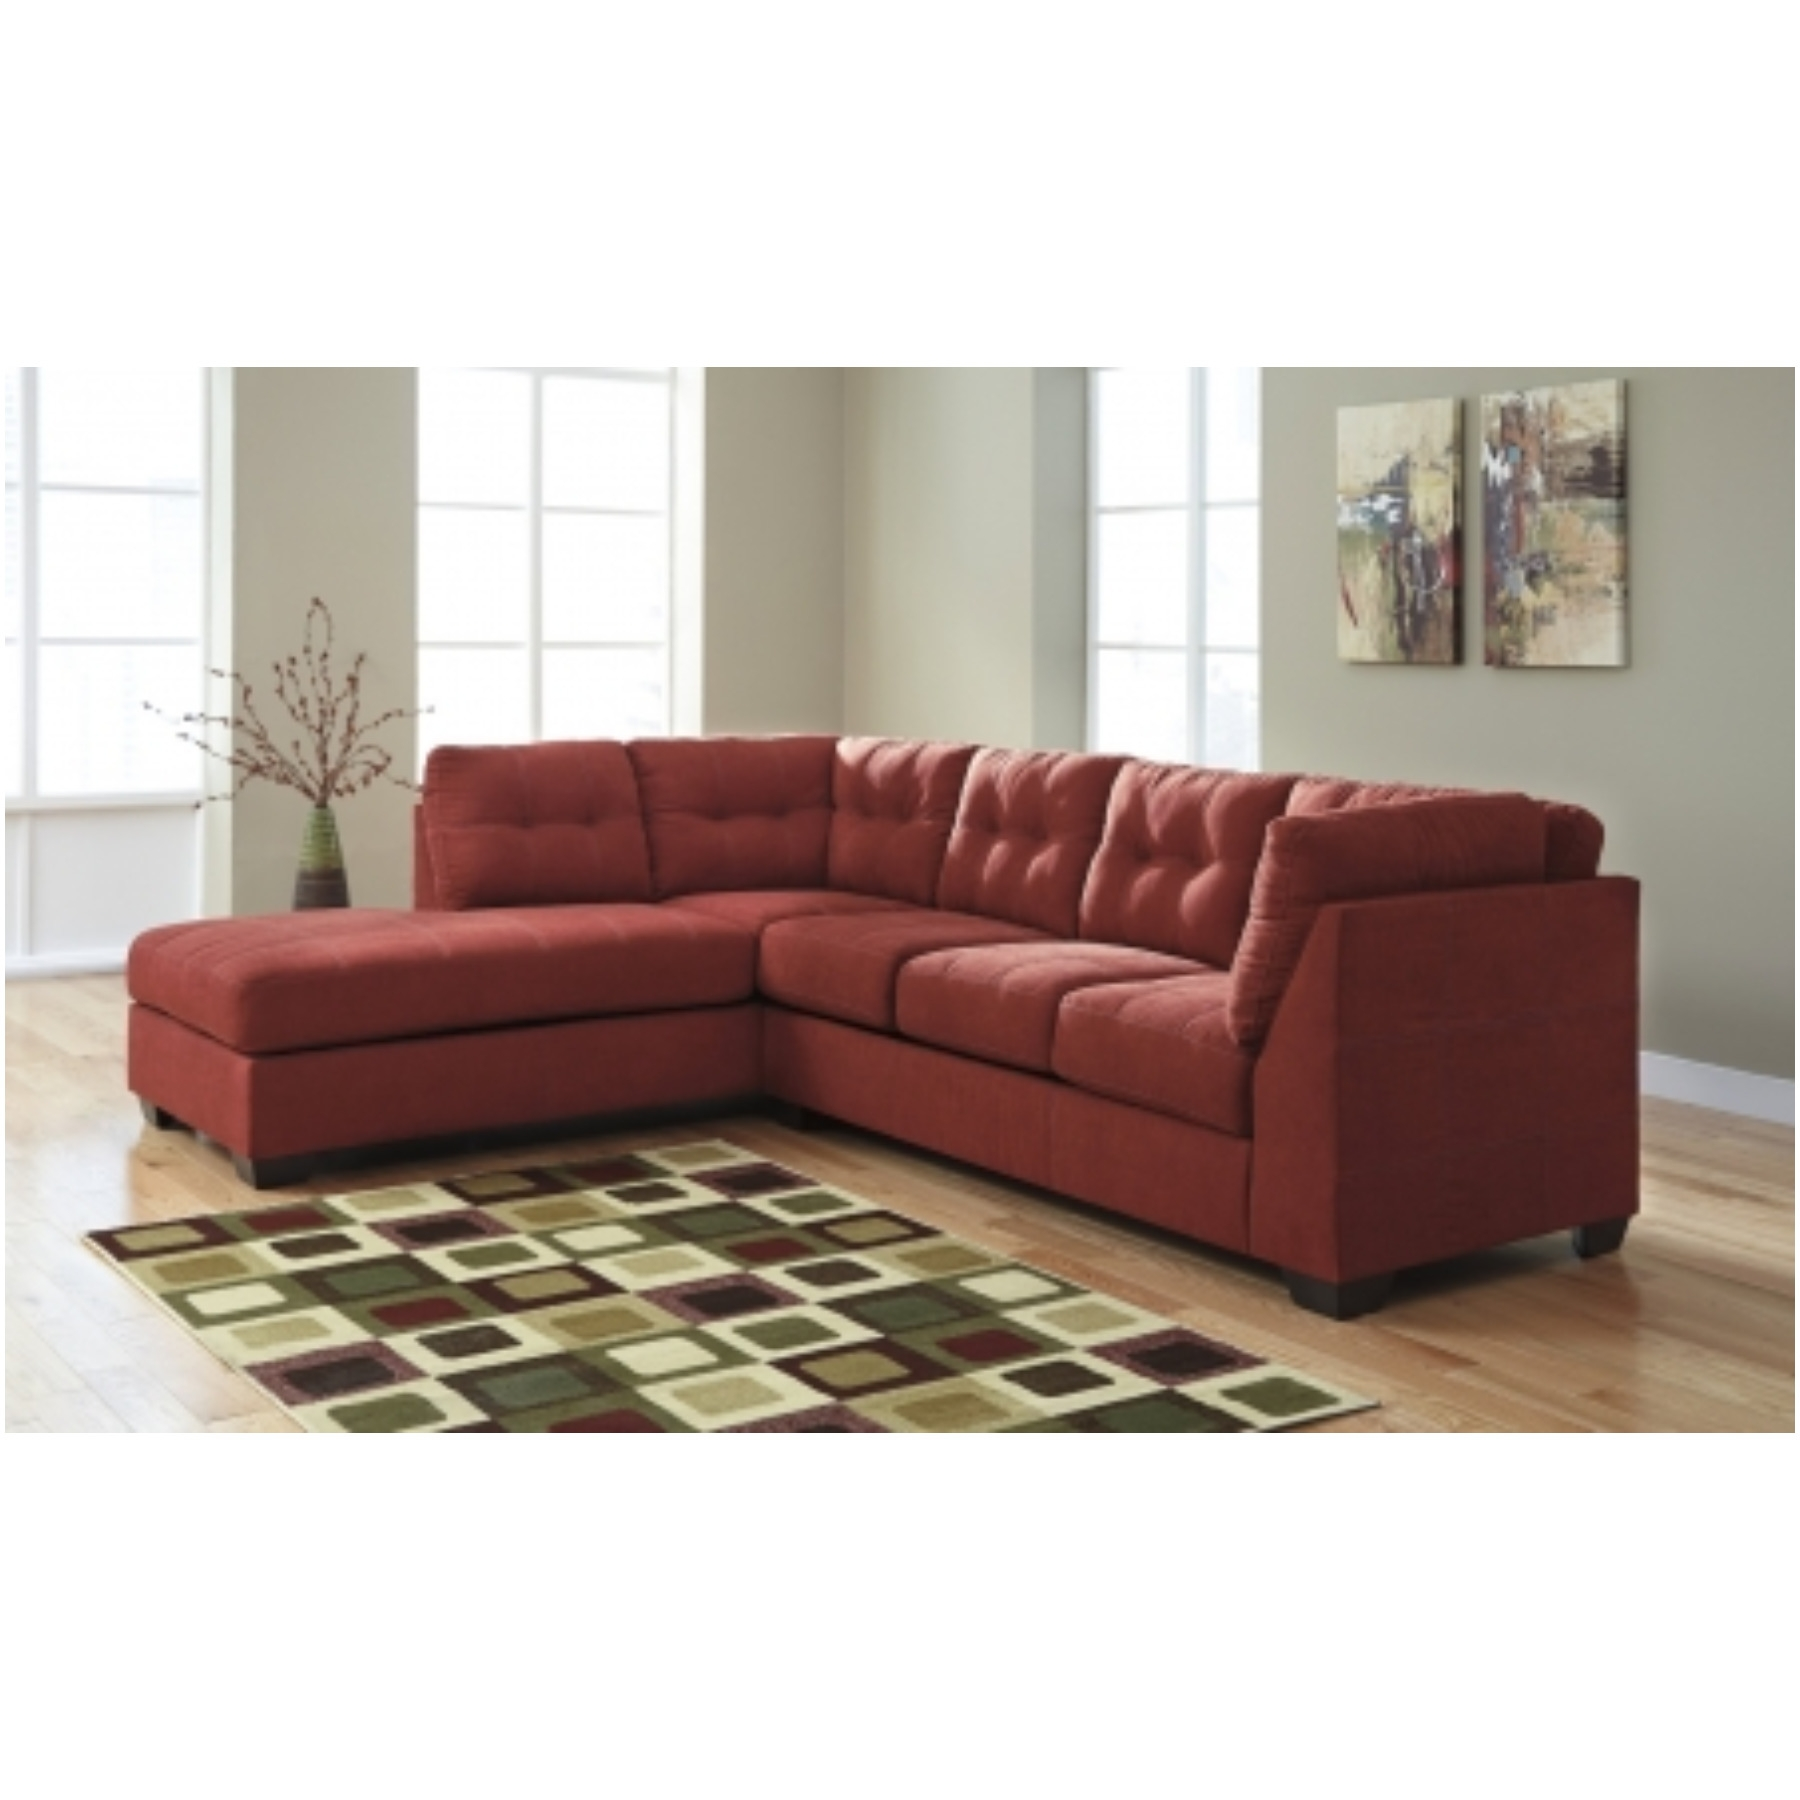 customize your sectional sofa high end beds 12 ideas of american made sofas